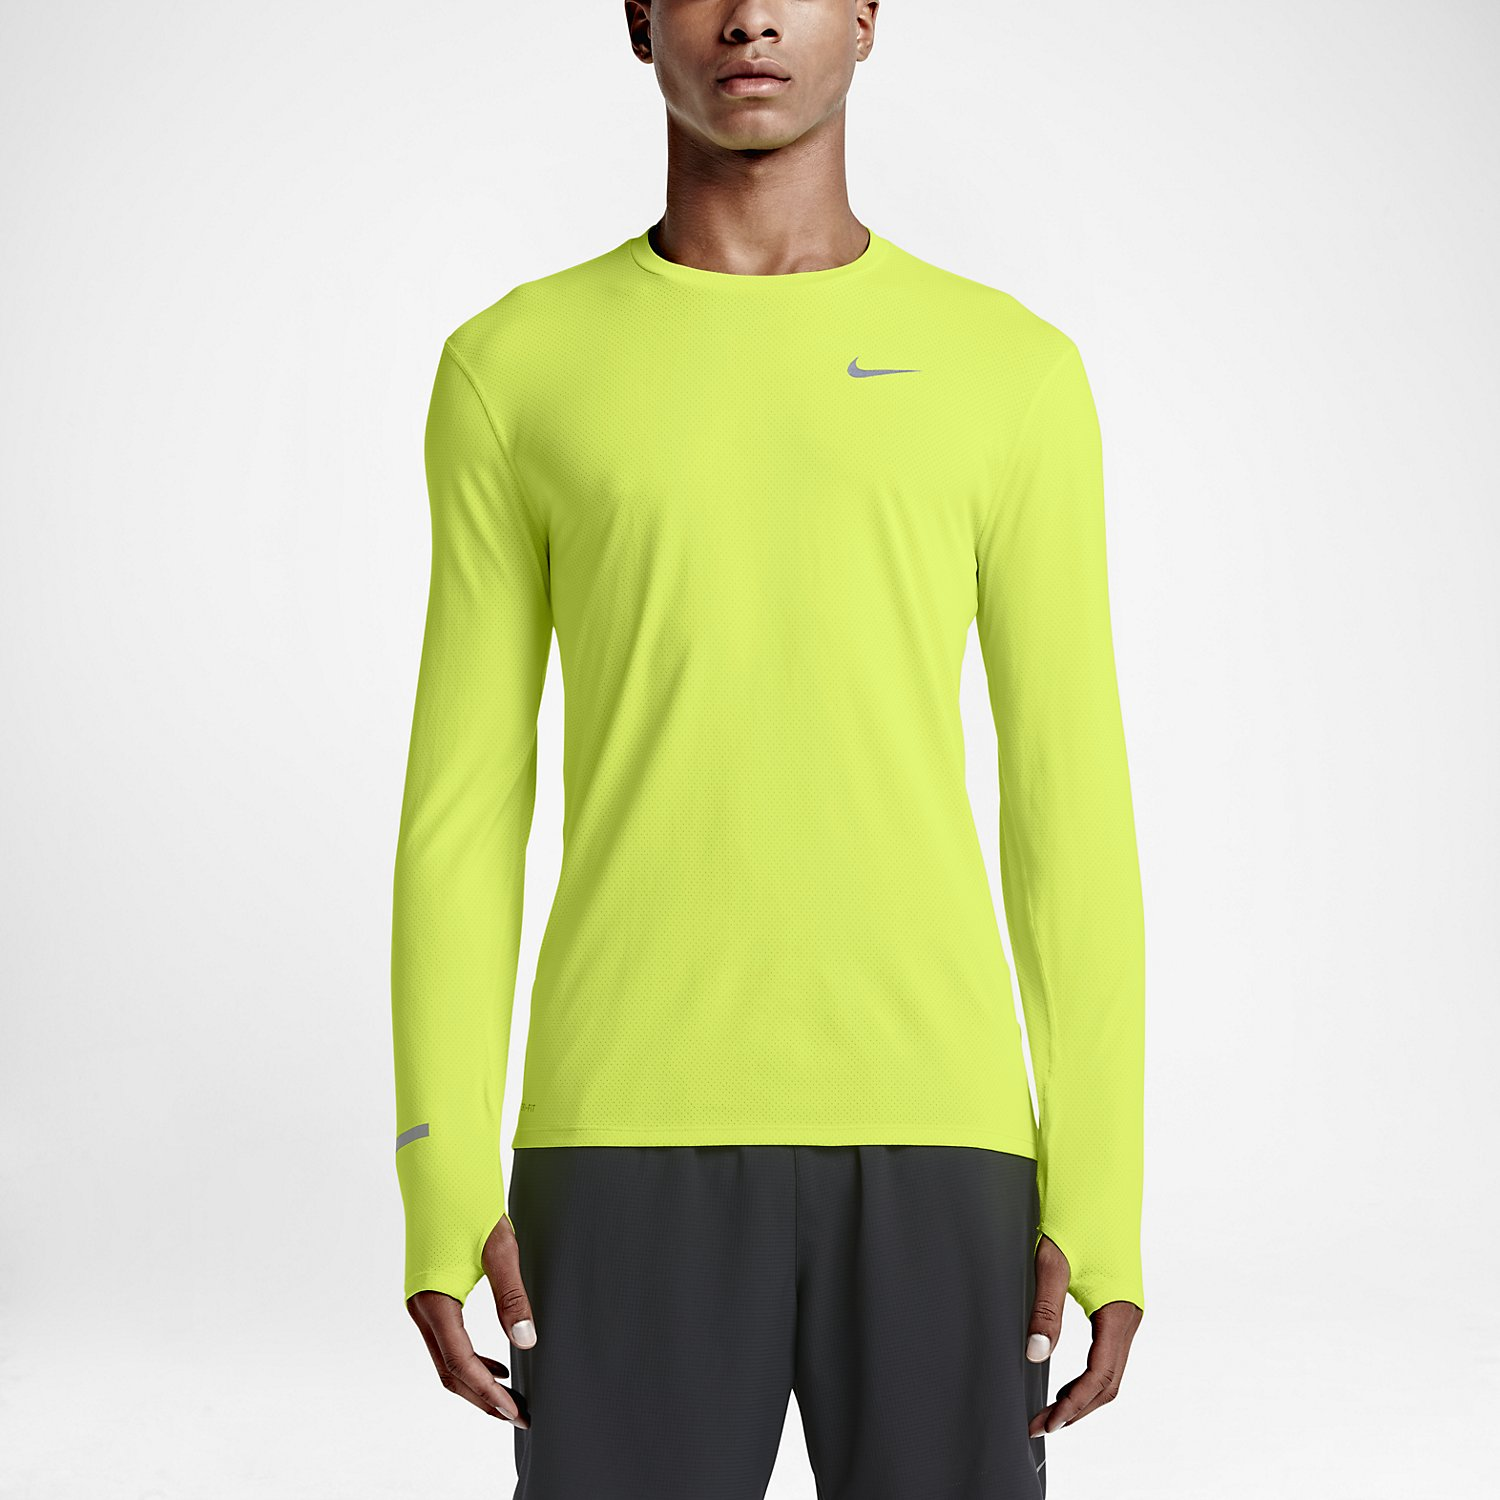 Nike dri fit contour long sleeve men 39 s running top alton for Best athletic dress shirts